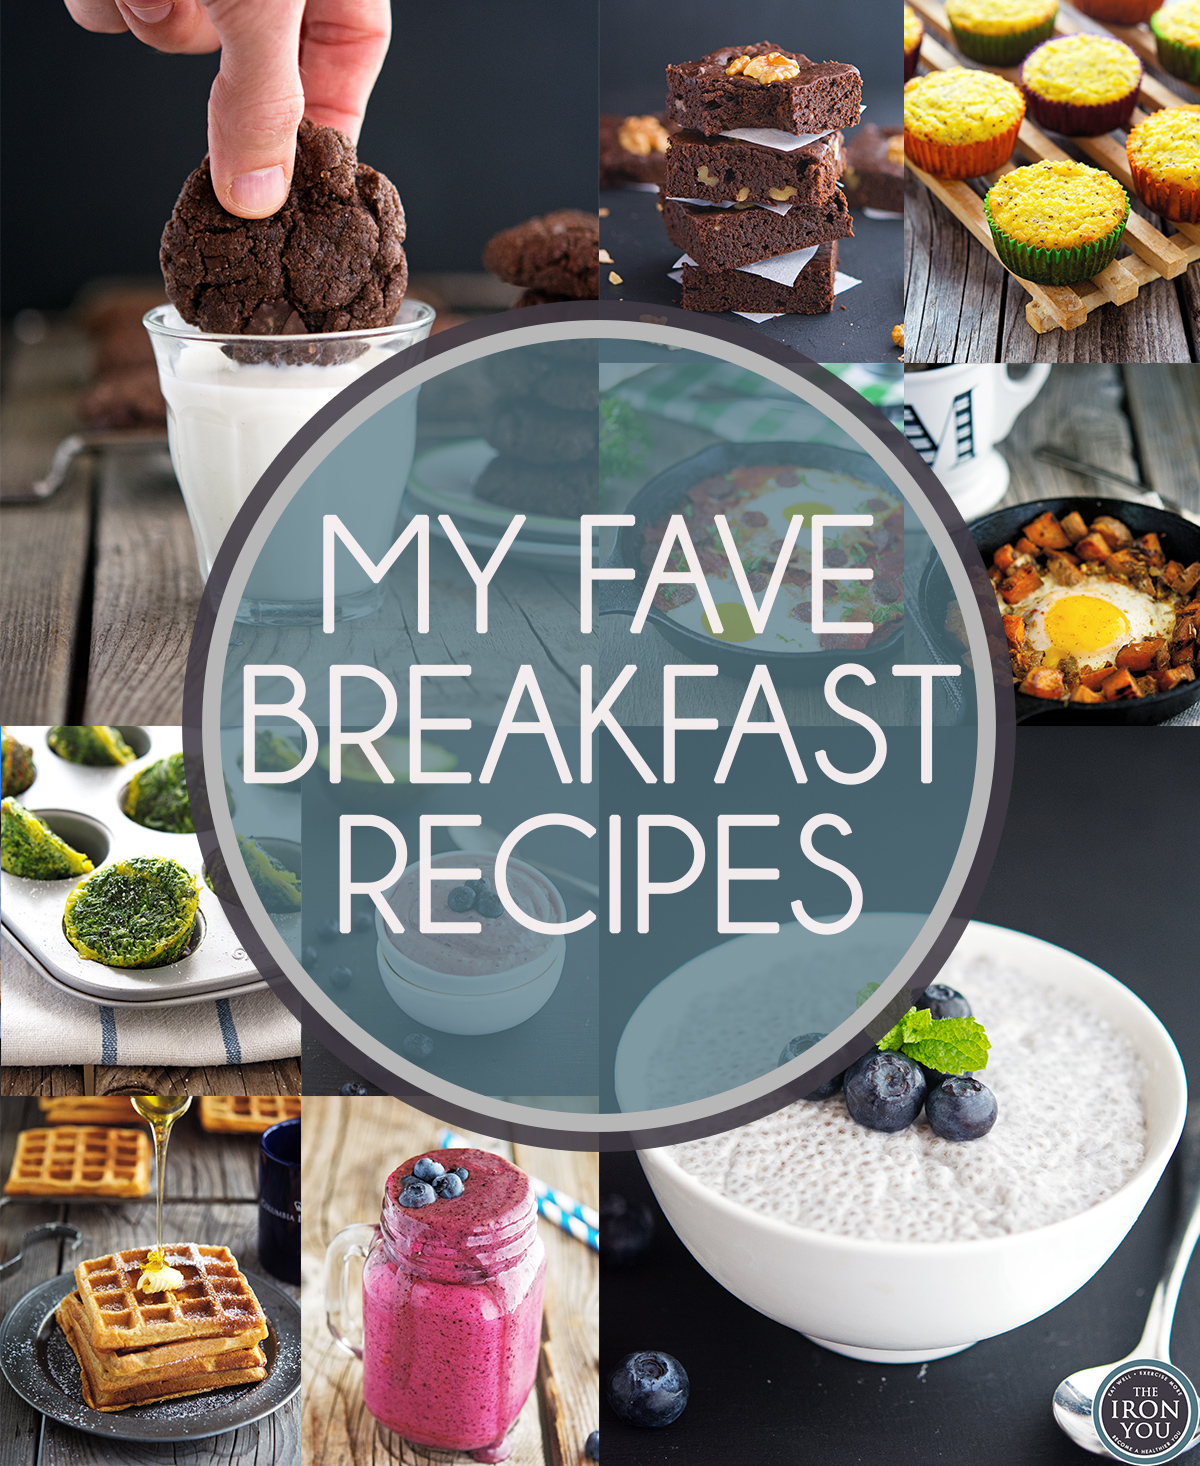 The Iron You: My Fave Breakfast Recipes